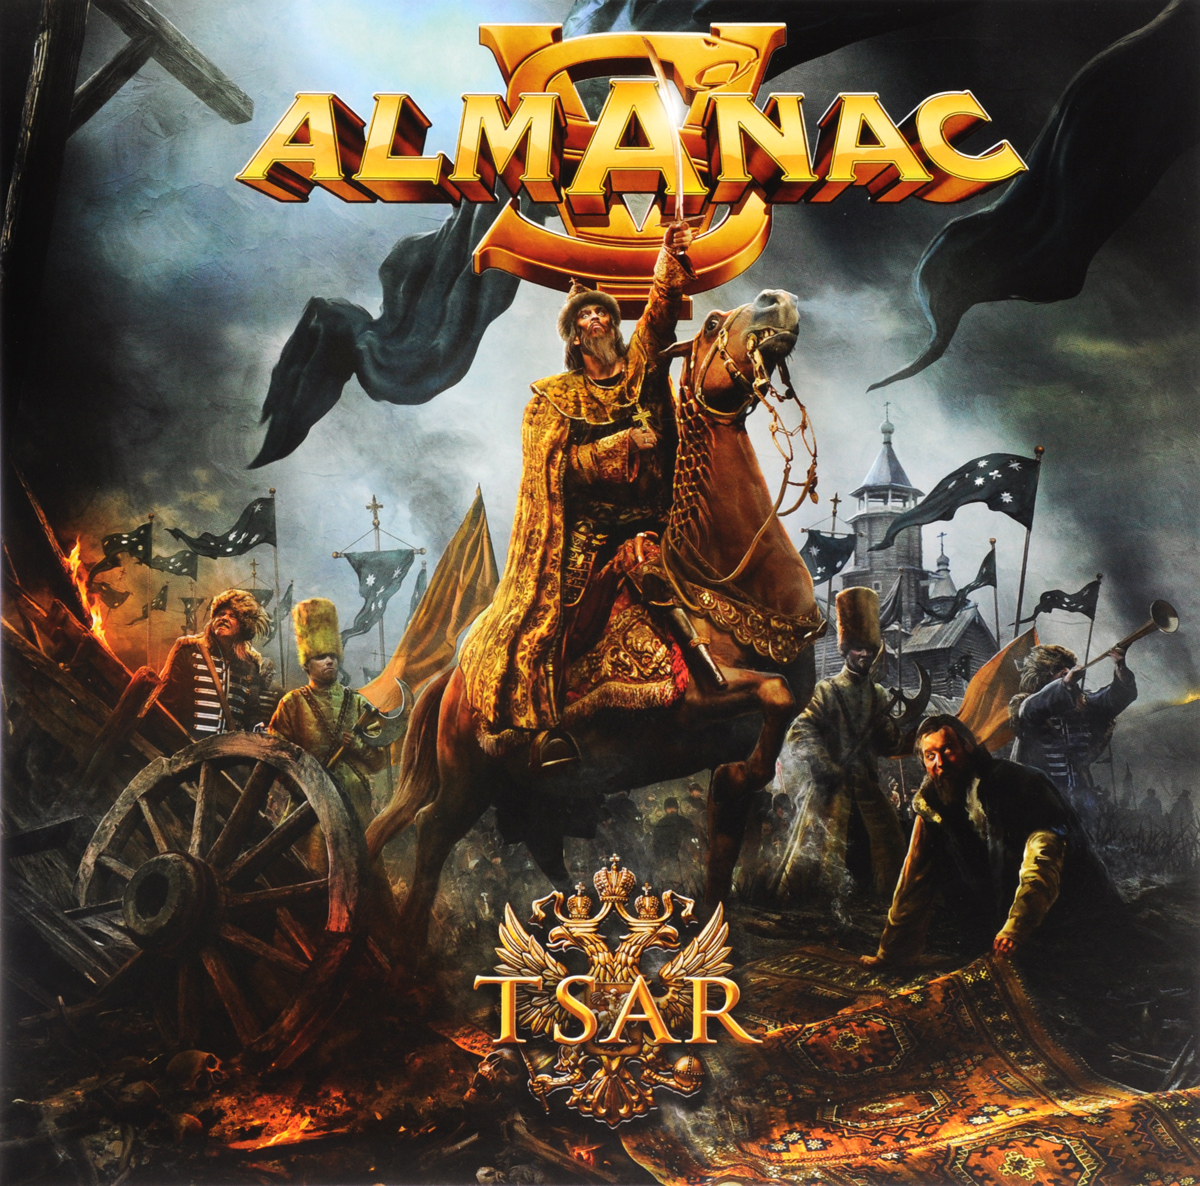 Almanac Almanac. Tsar (2 LP) [show z store] [pre order] cloud 9 w 01c quakeblast clear version c9 cloud9 quakeblast quake blast transformation action figure